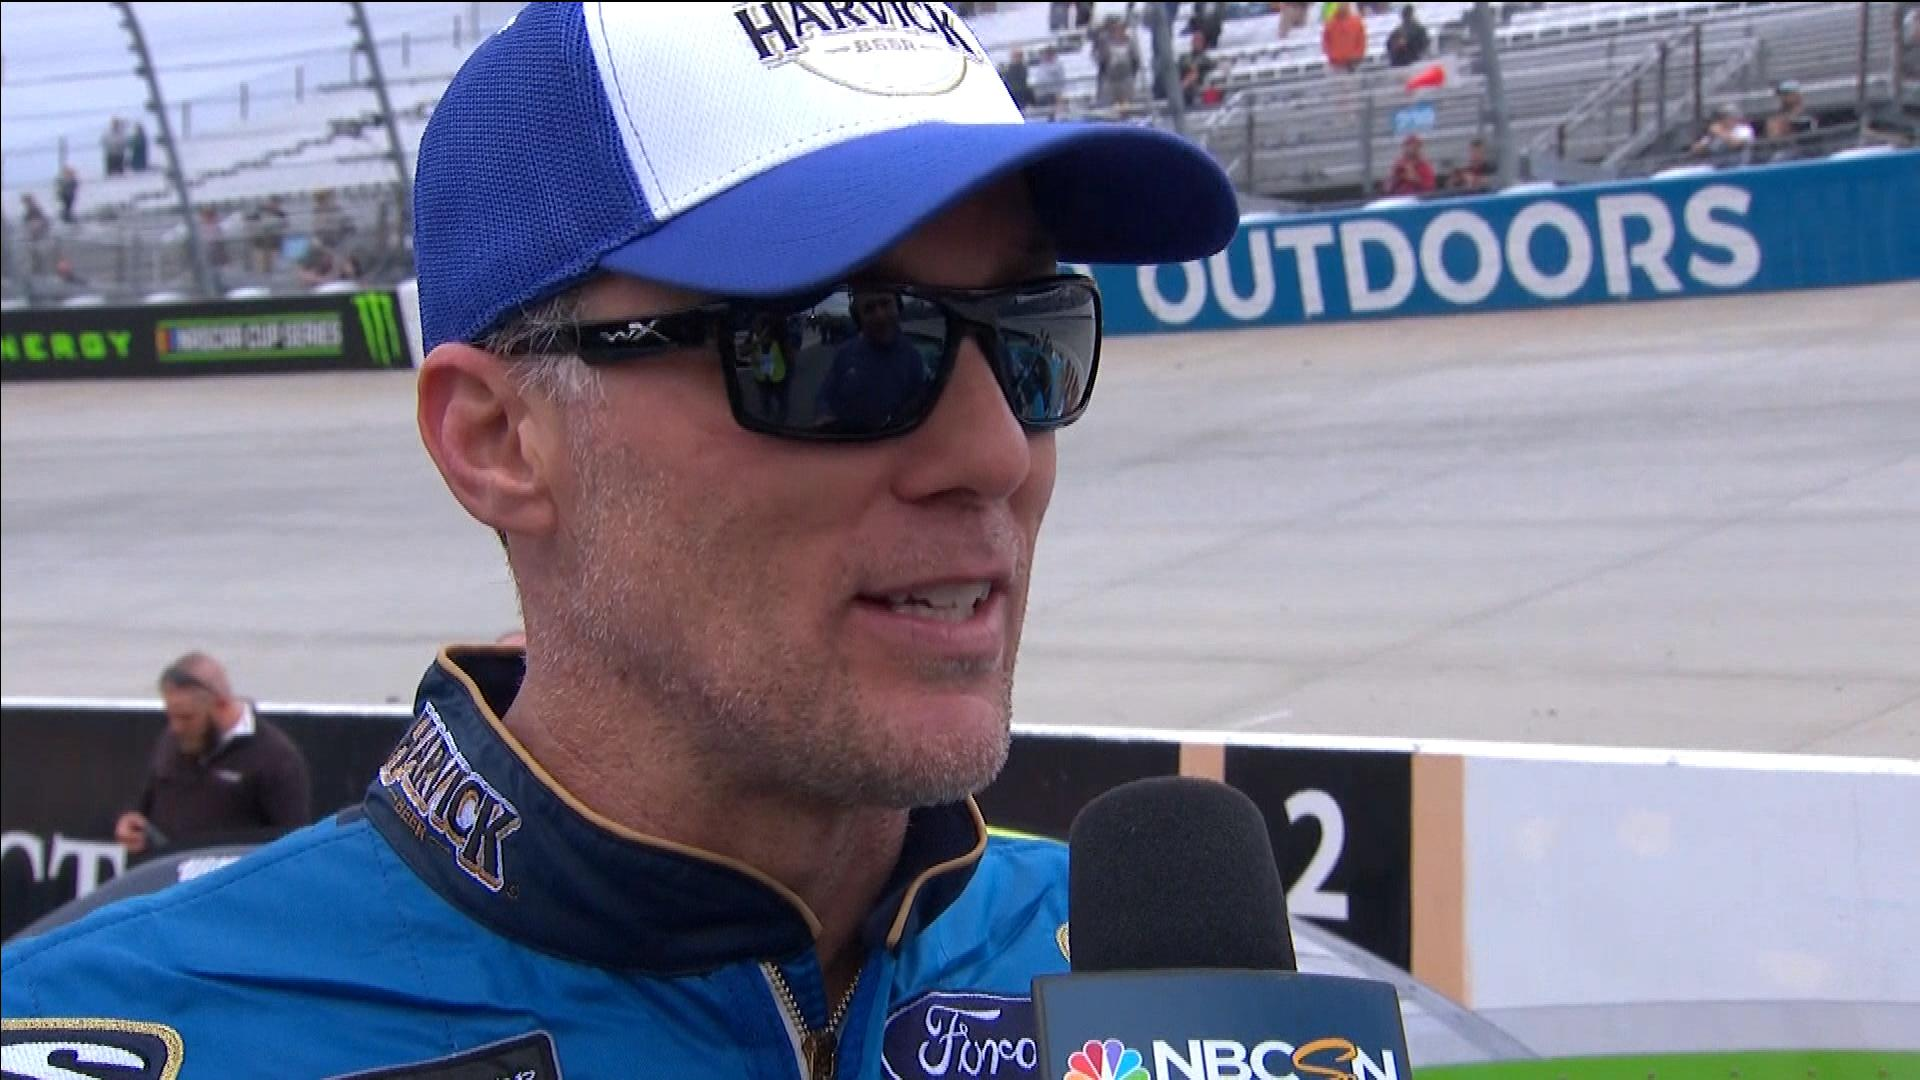 Kevin Harvick endures radio issues during Dover playoff race to end